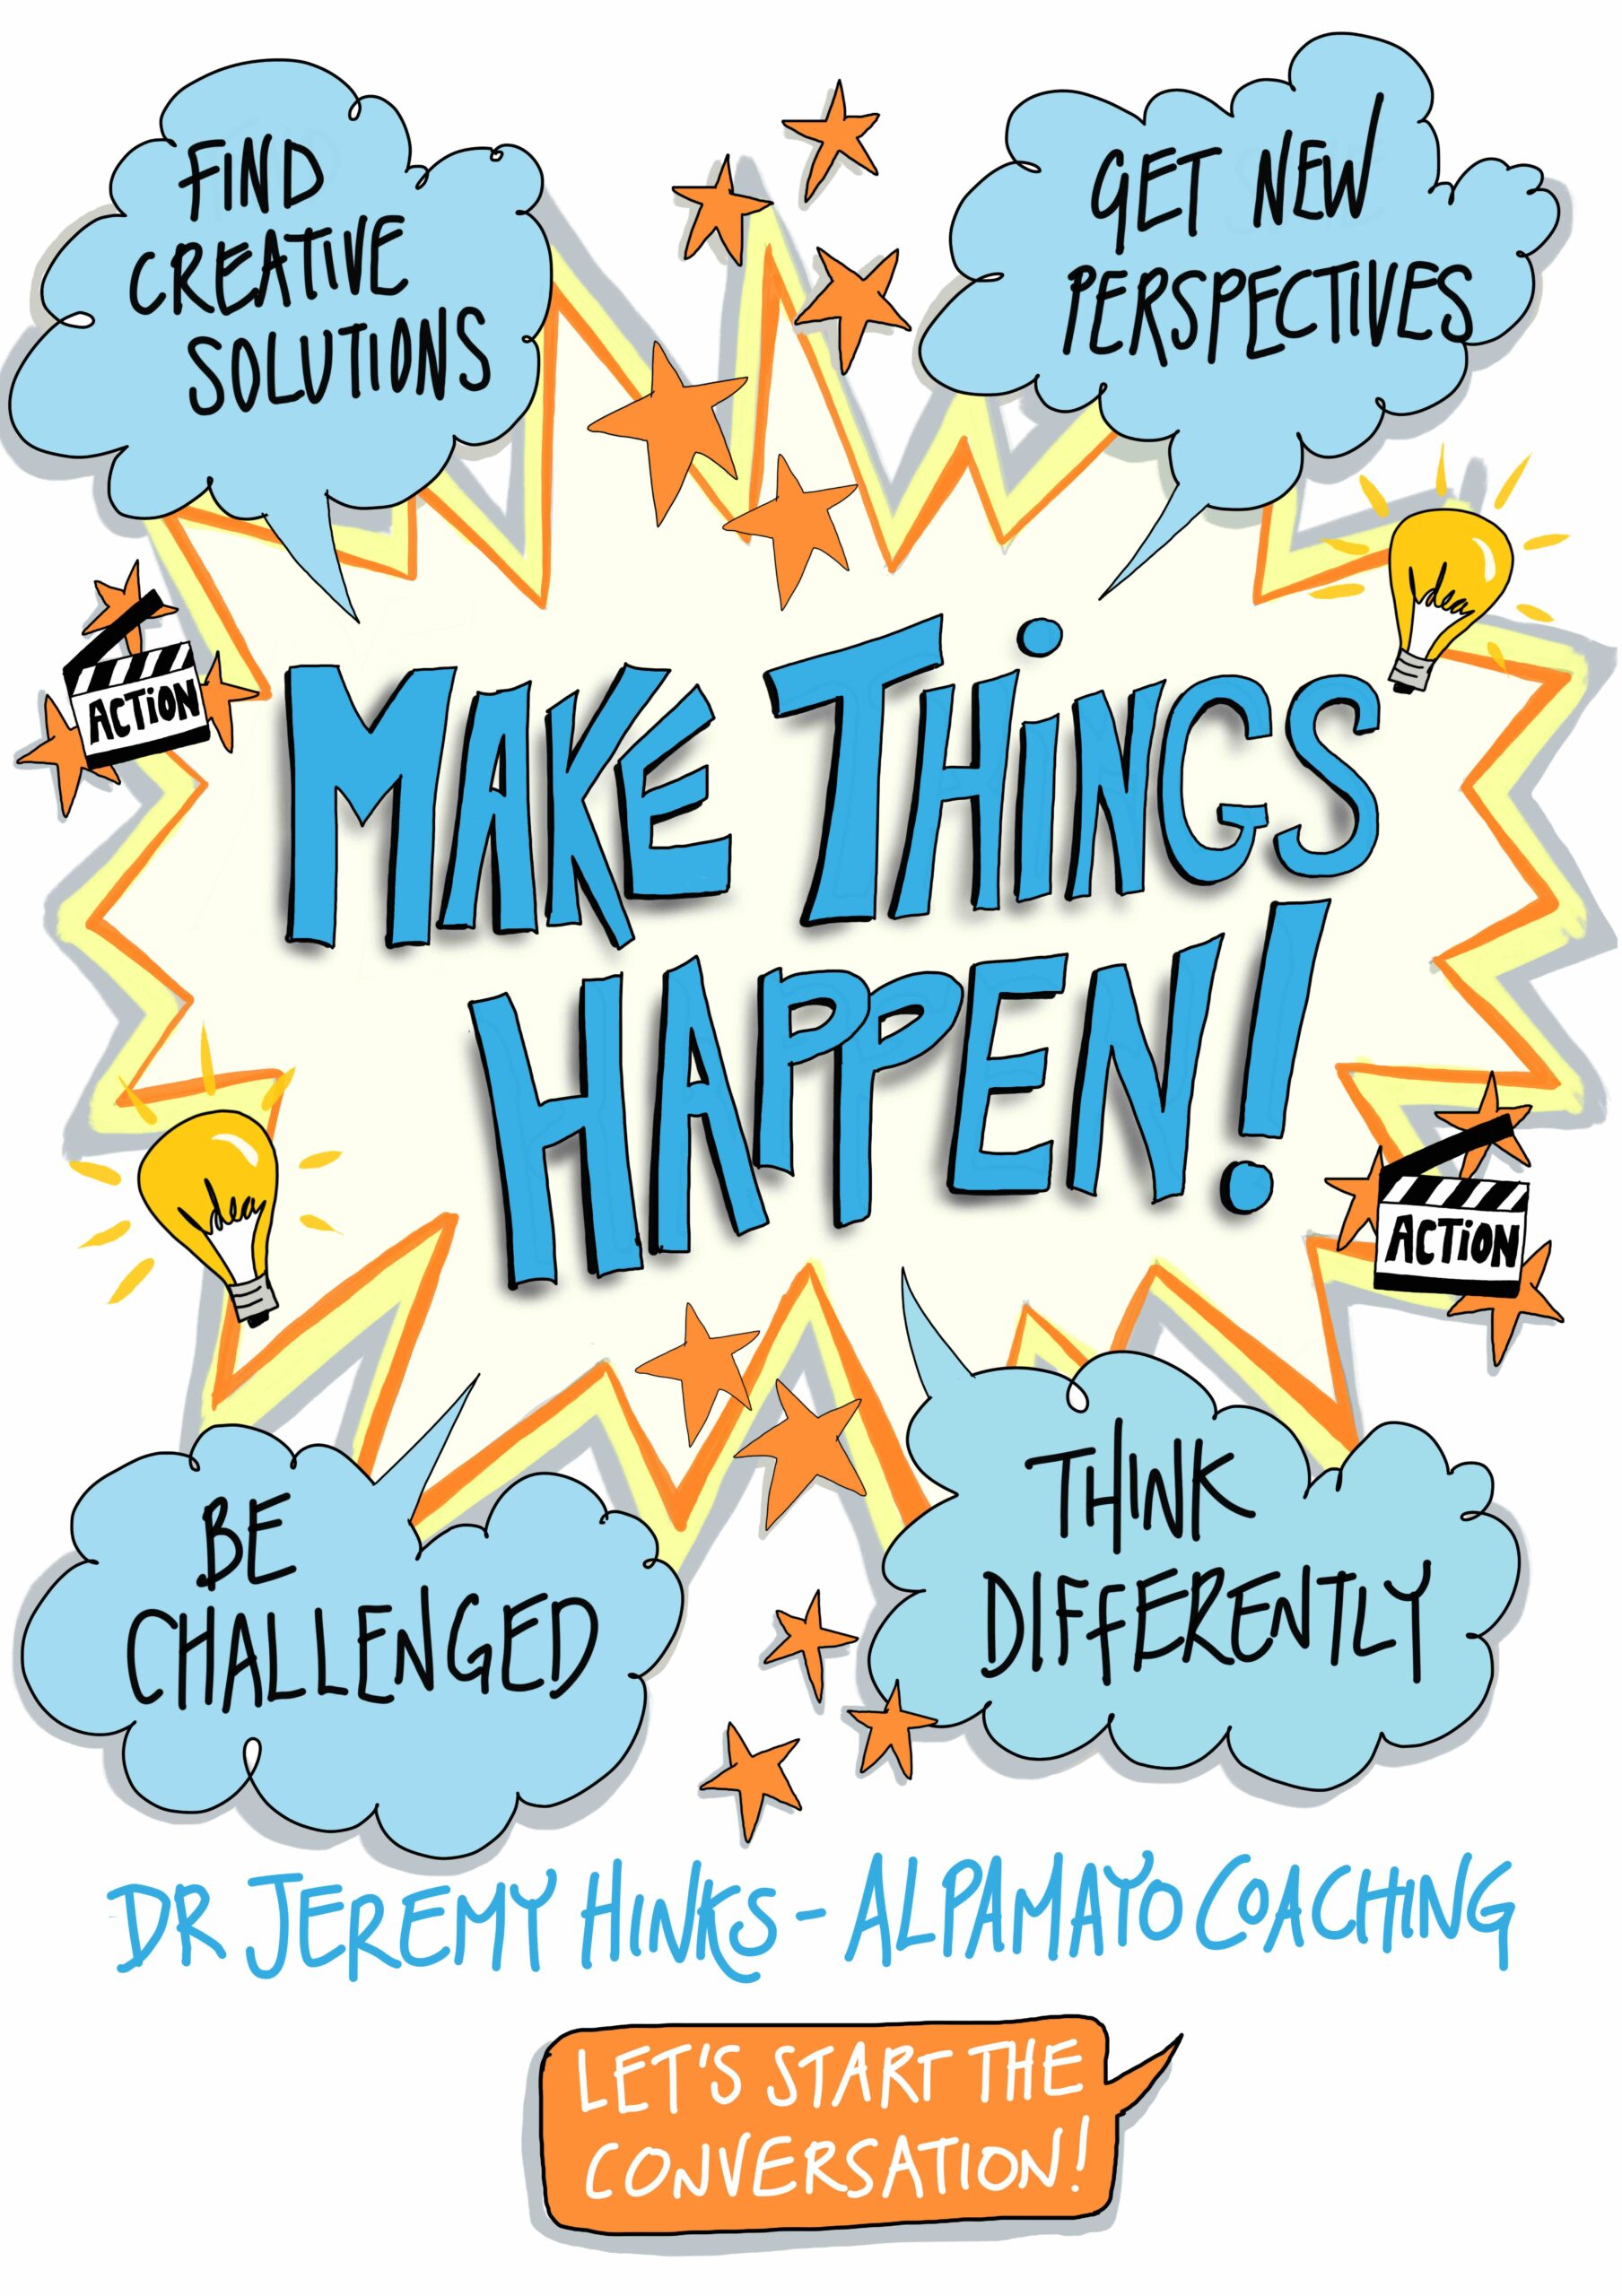 Make Things Happen - Postcard For Dr Jeremy Hinks